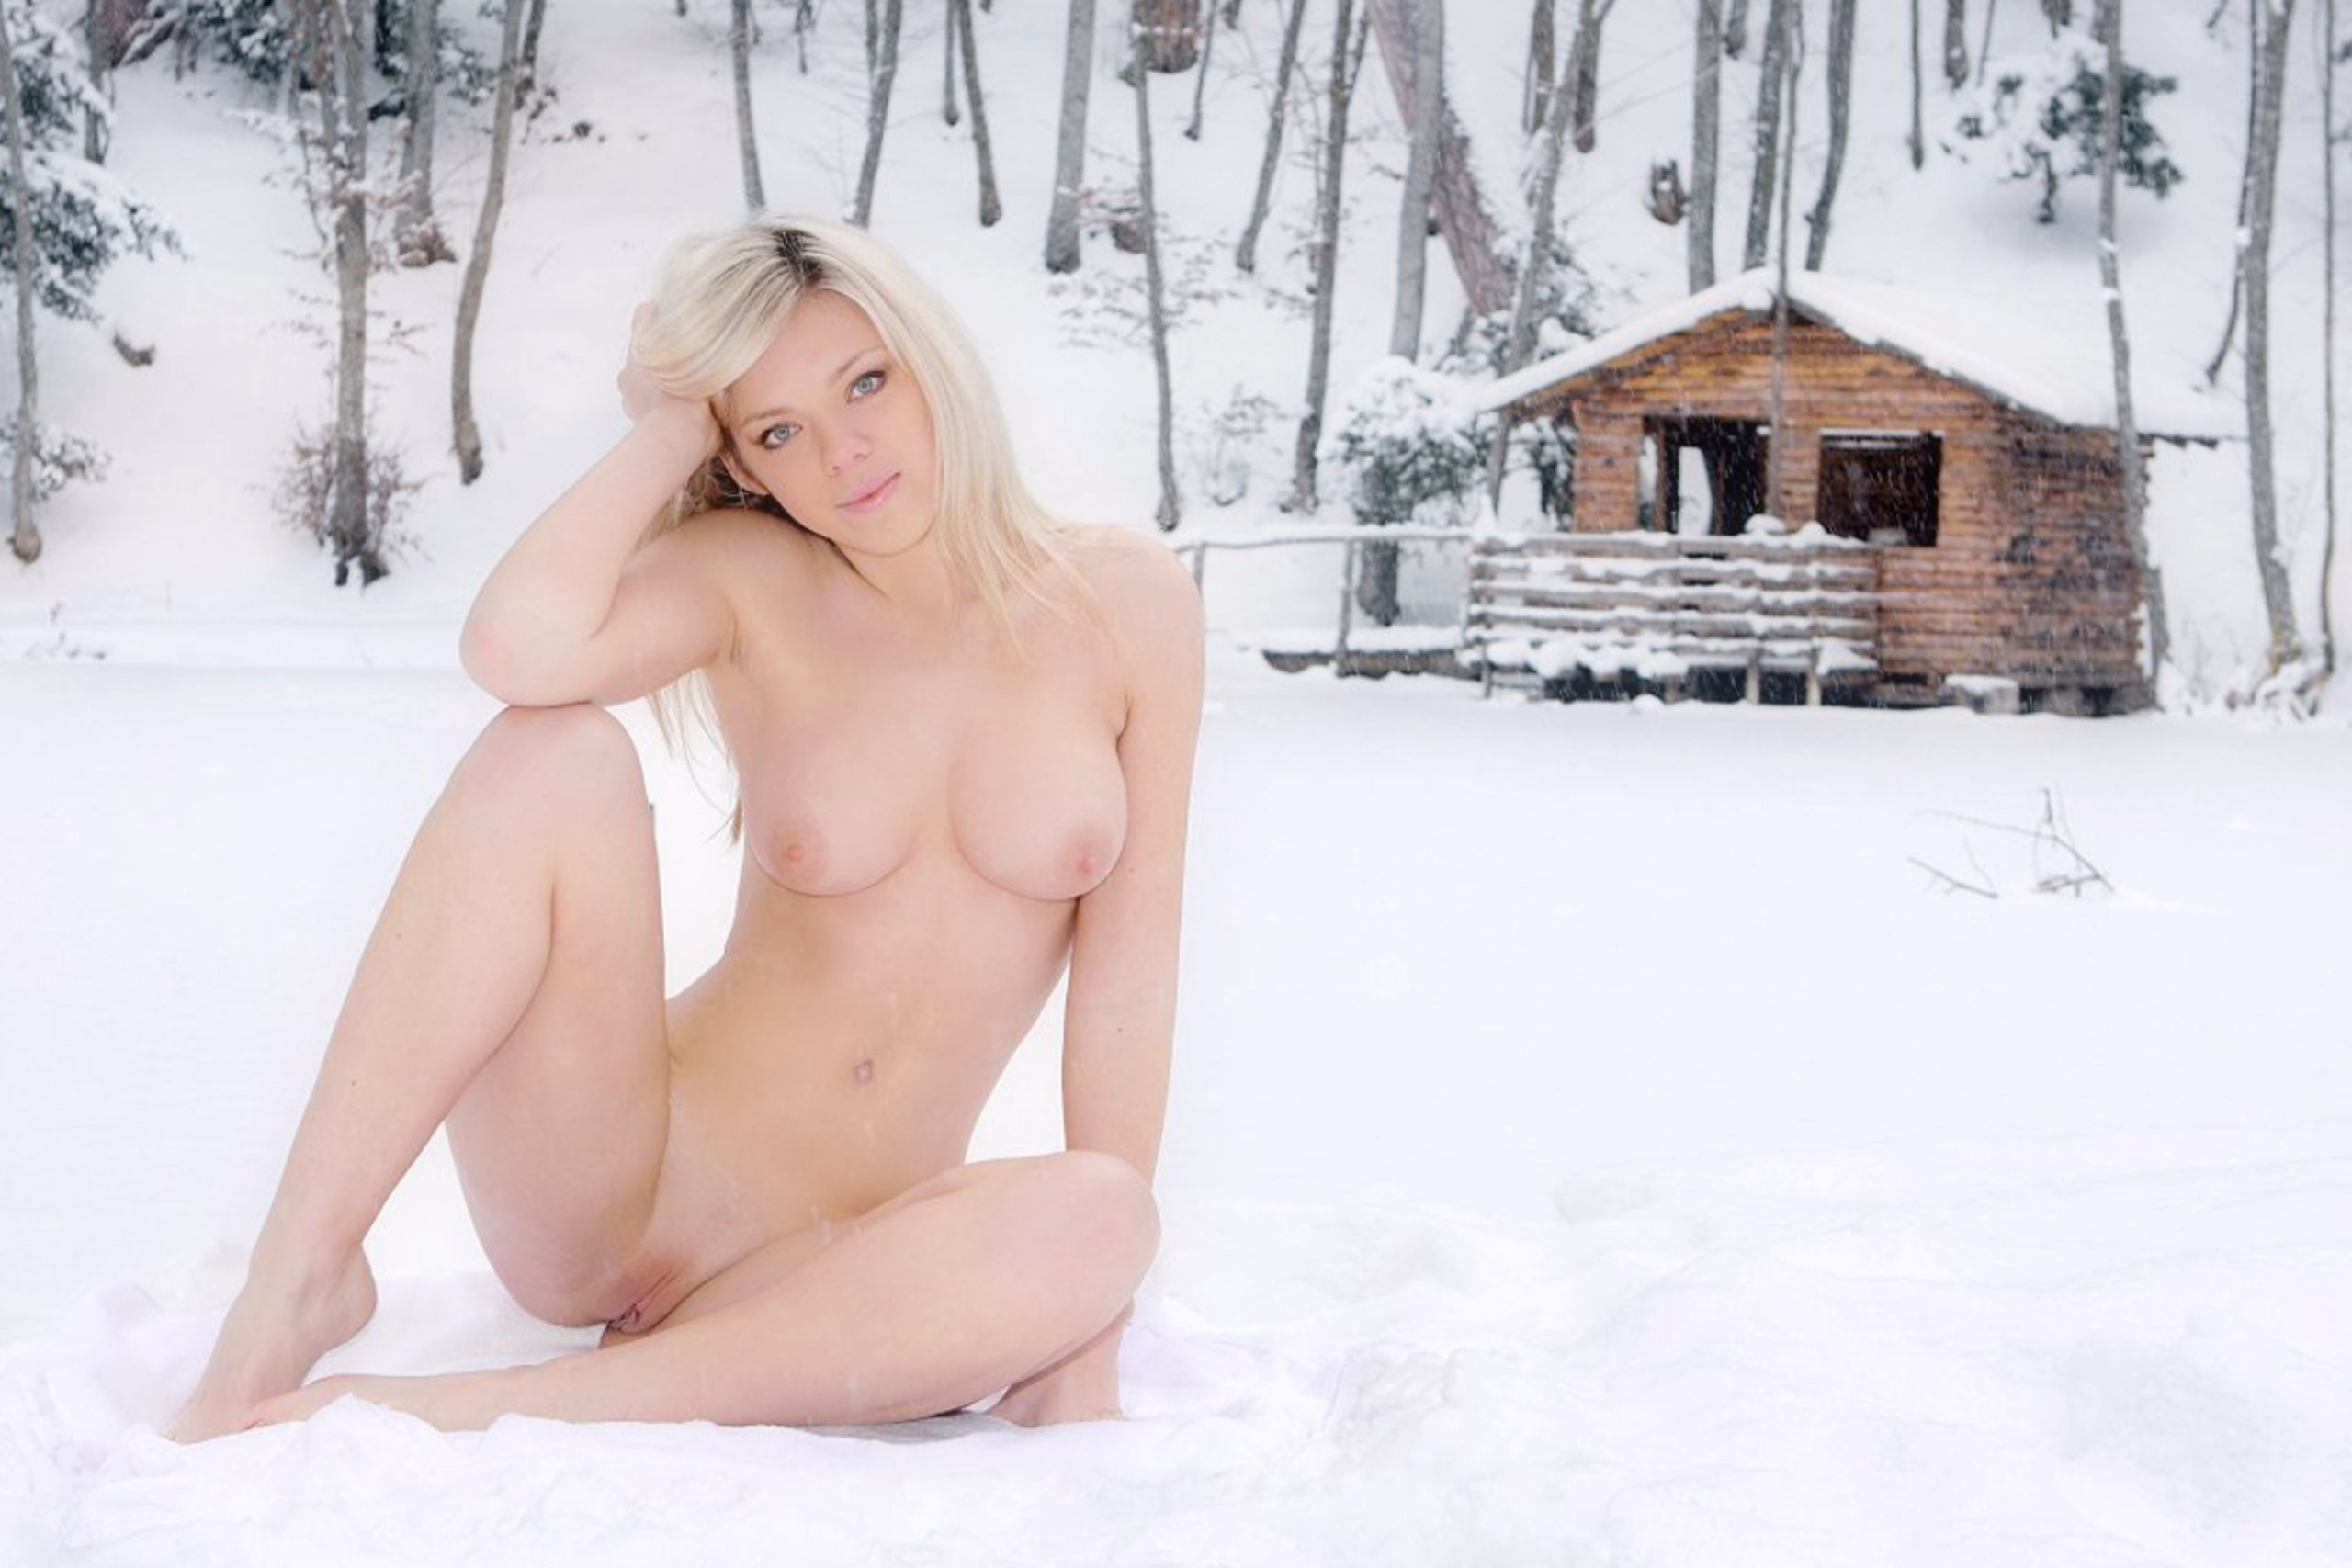 Hot blonds naked in the snow consider